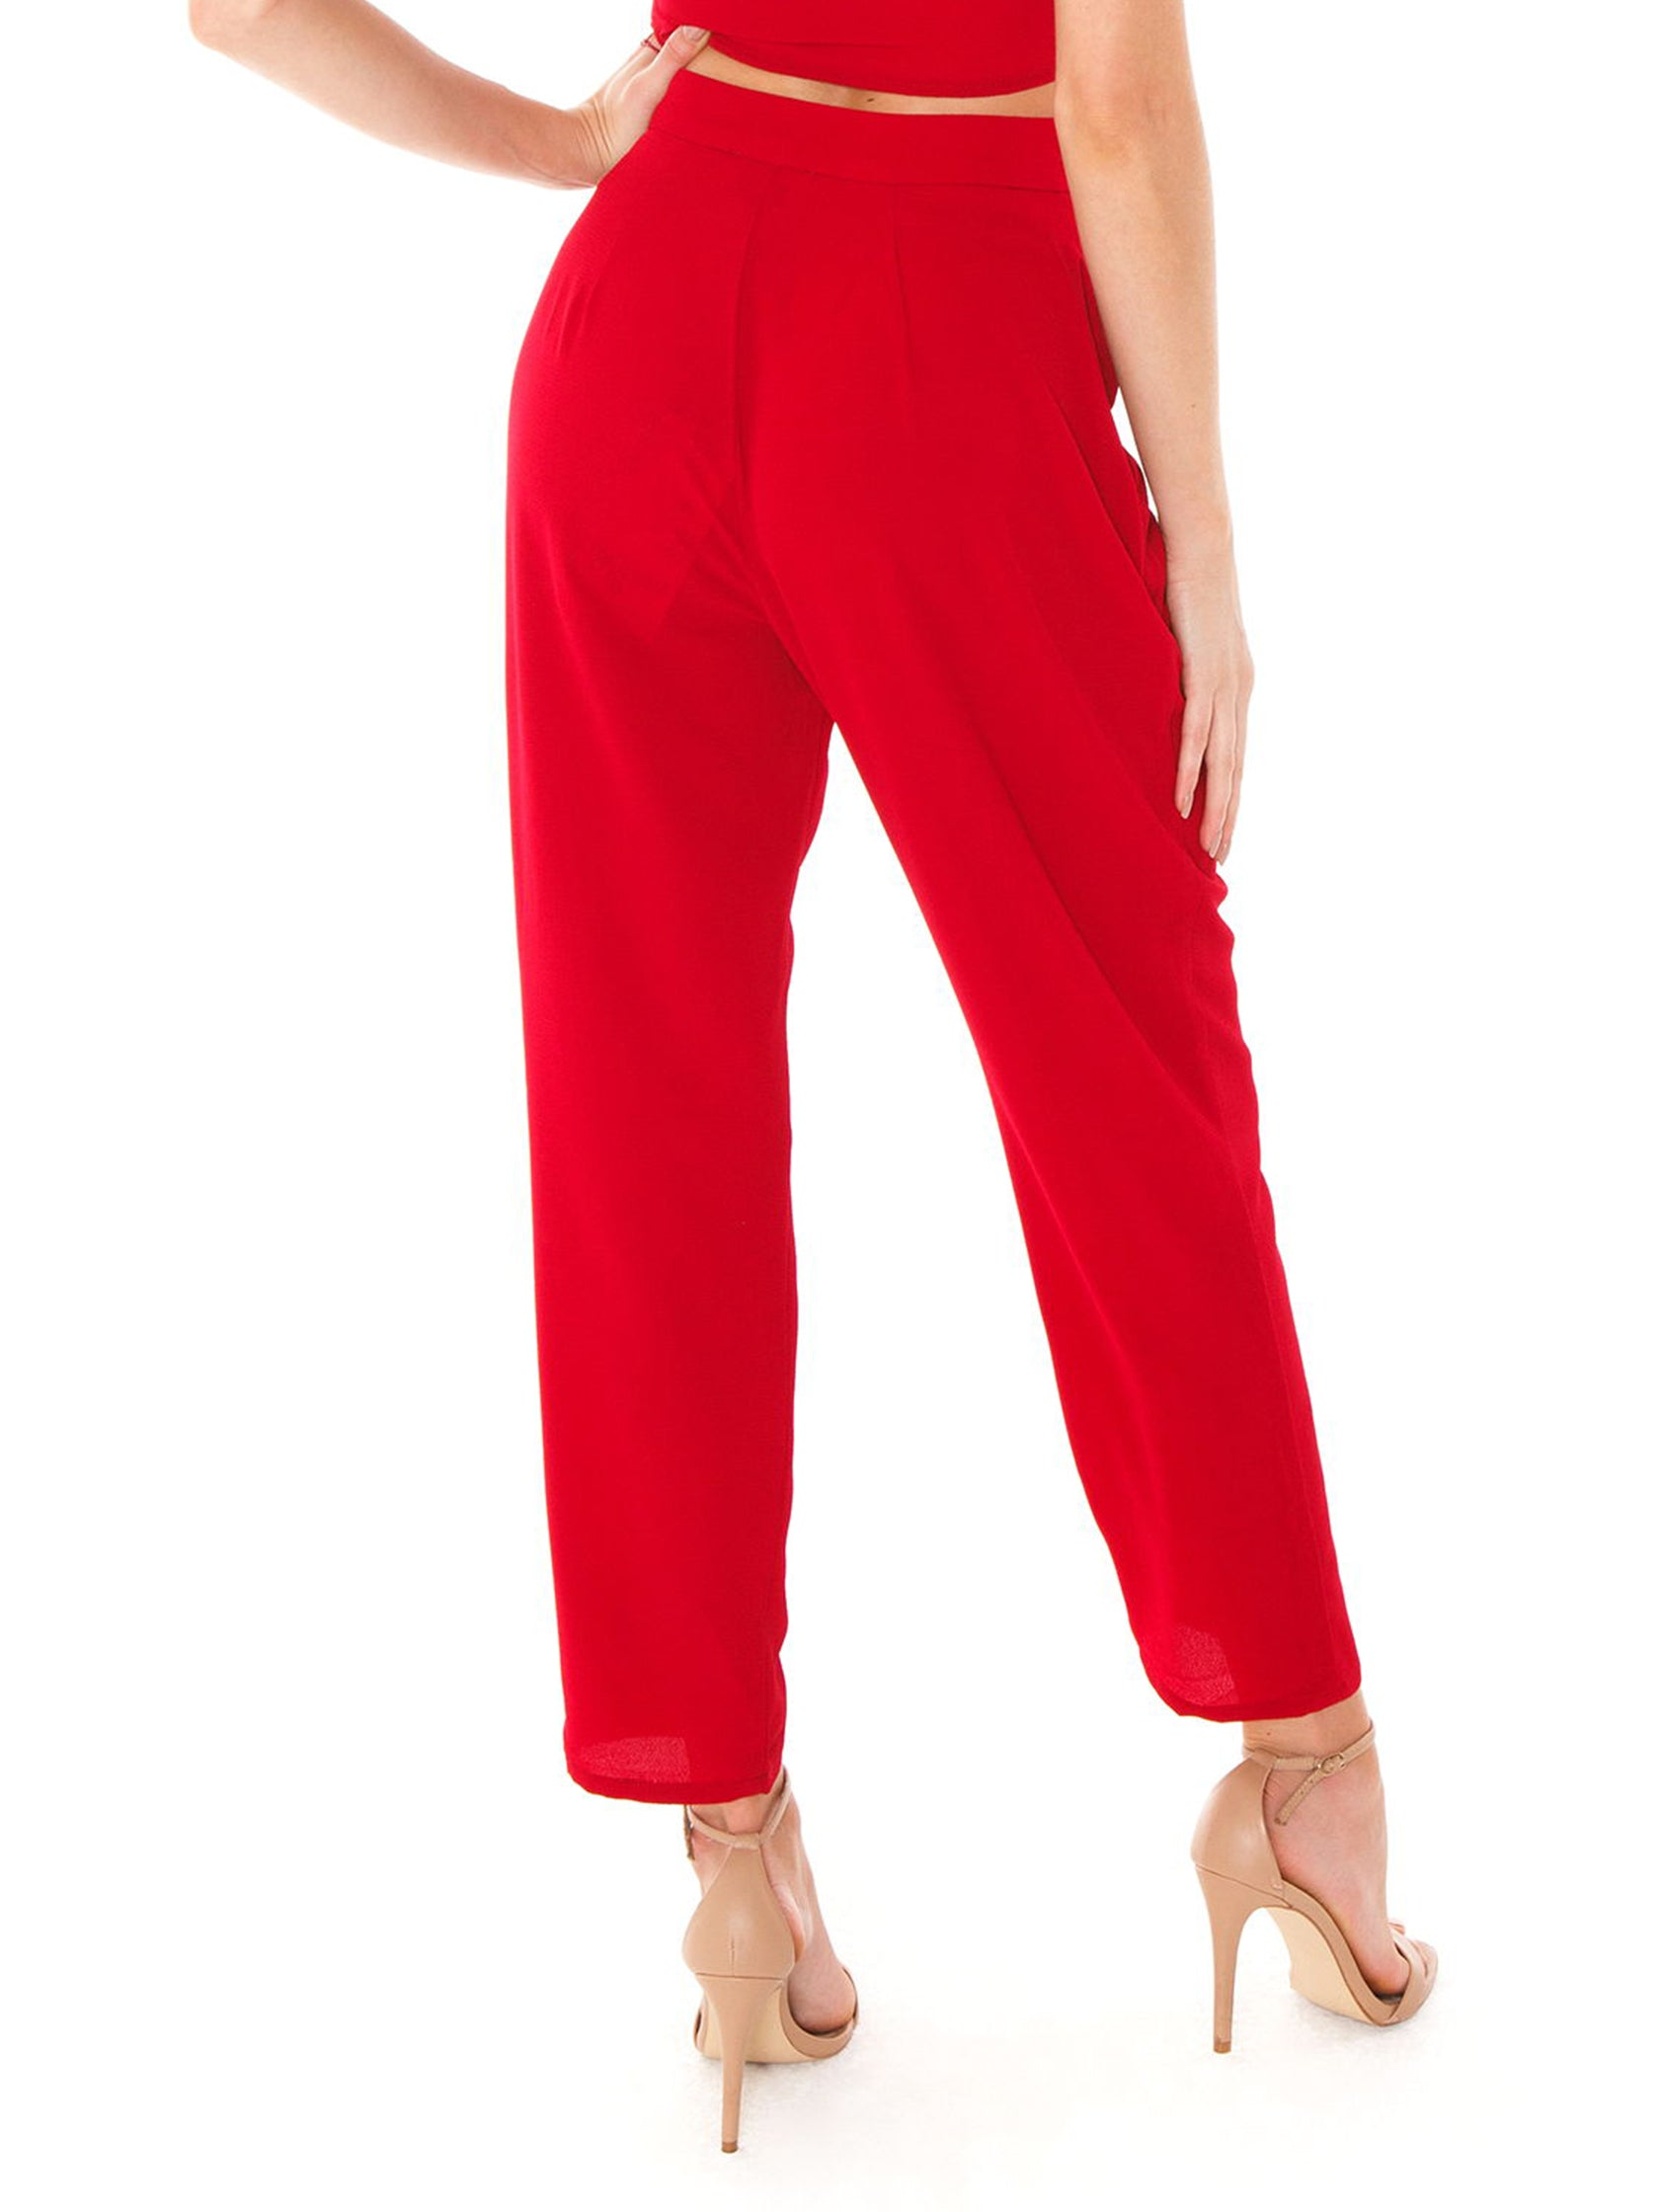 Women outfit in a pants rental from Show Me Your Mumu called Hepburn Pants